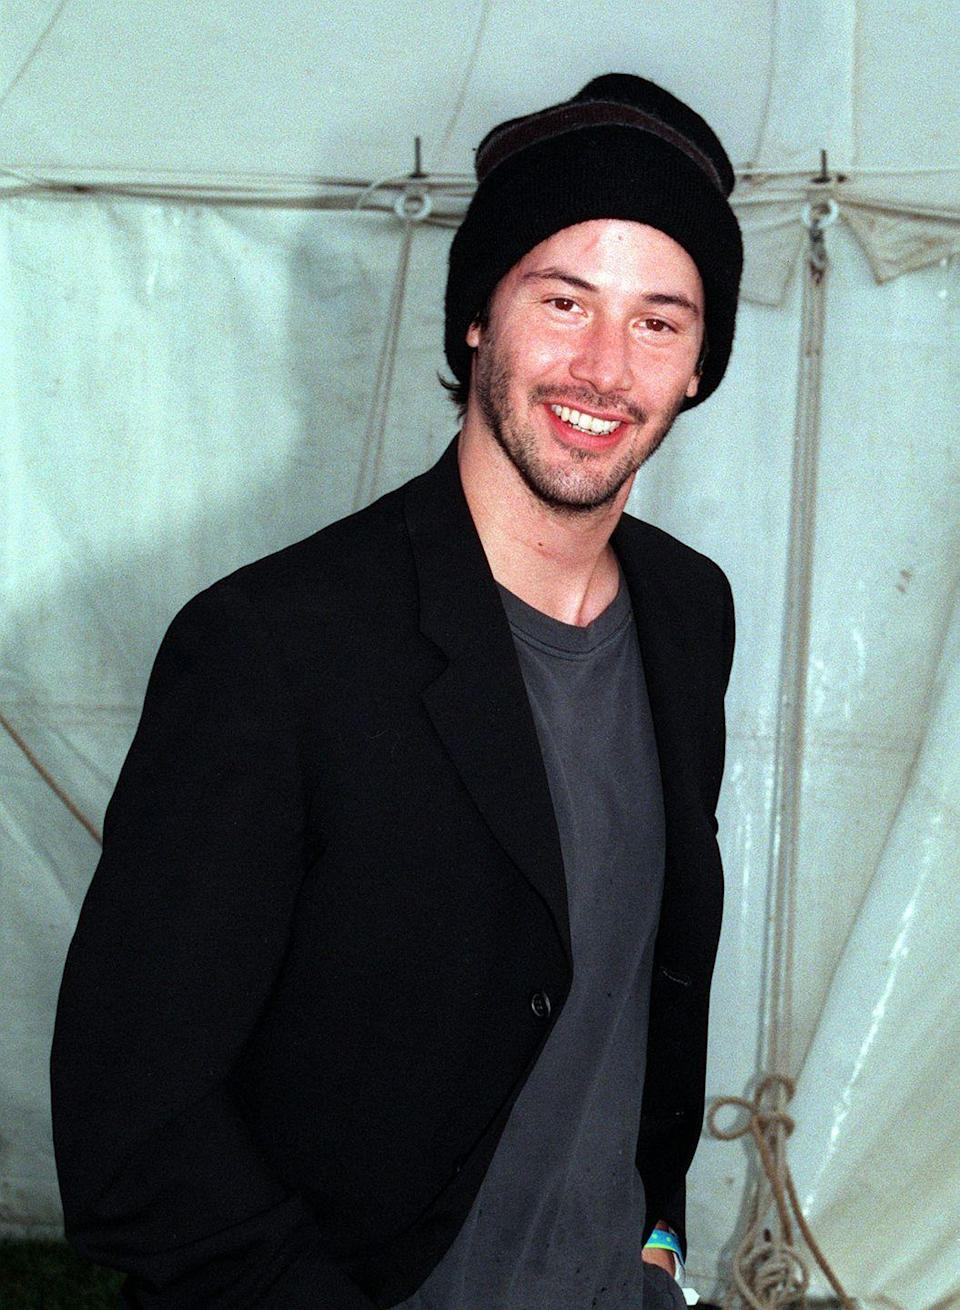 <p>Another heartthrob of the 1980s-1990s, Reeves was known for unconventional roles, including<em> Bill and Ted Face the Music</em><em>, Speed, The Matrix</em> franchise and <em>My Own Private Idaho.</em></p>